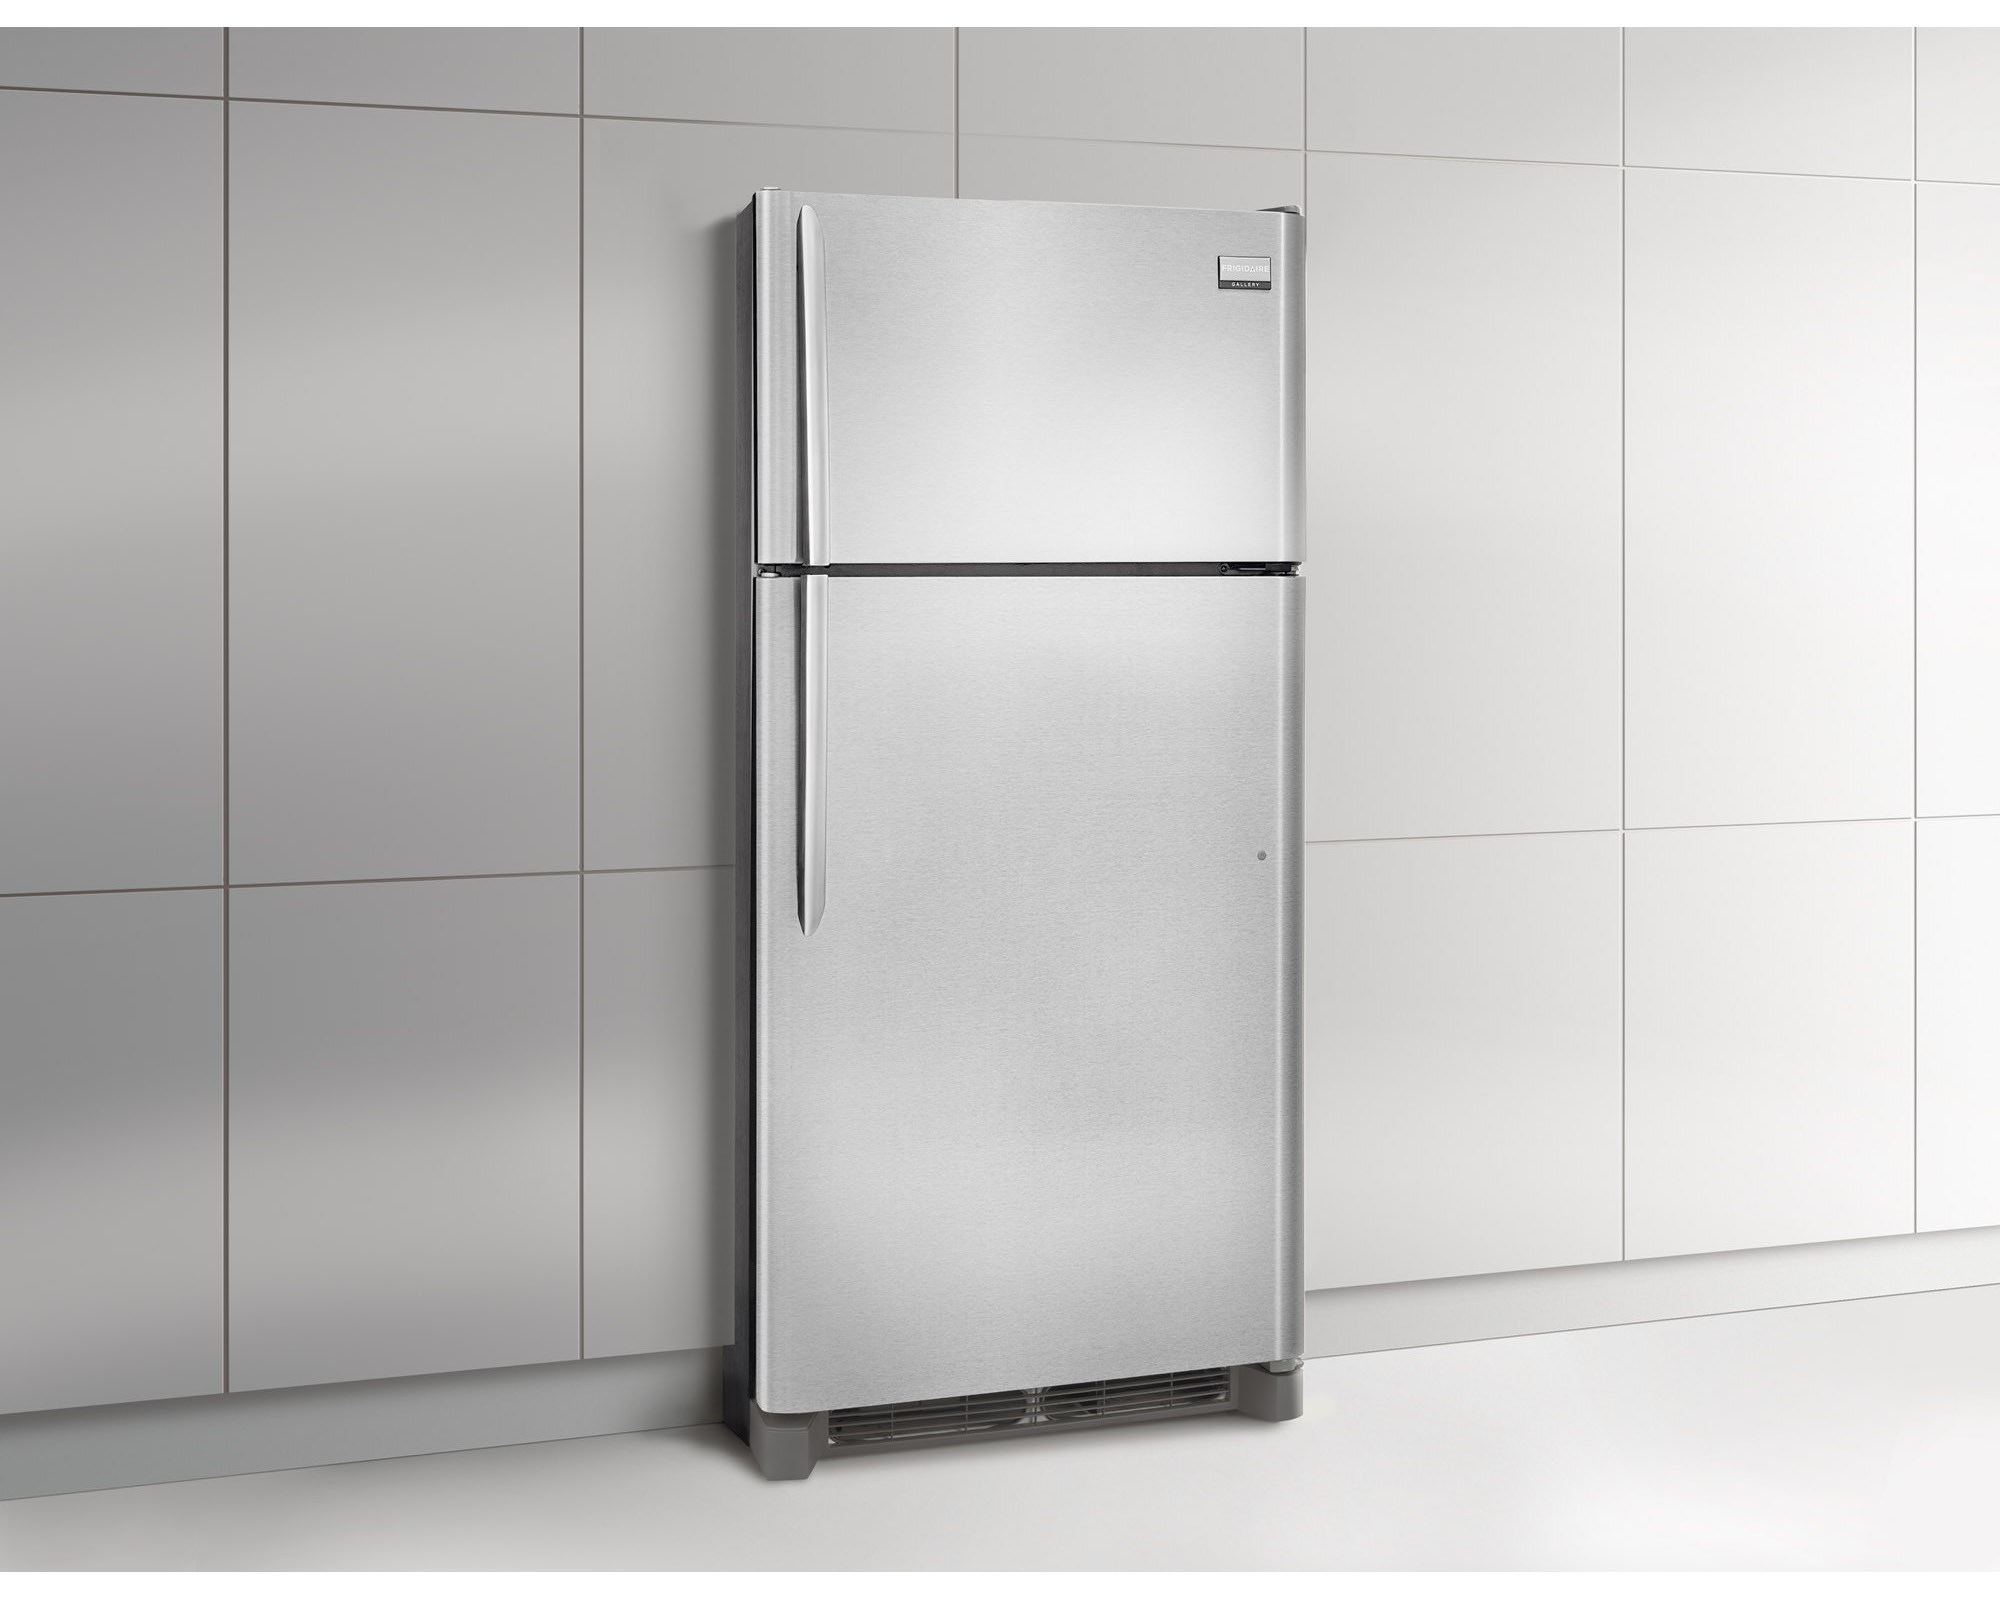 Frigidaire Gallery FGHT1846QF 18 cu. ft. Top Freezer Refrigerator - Stainless Steel